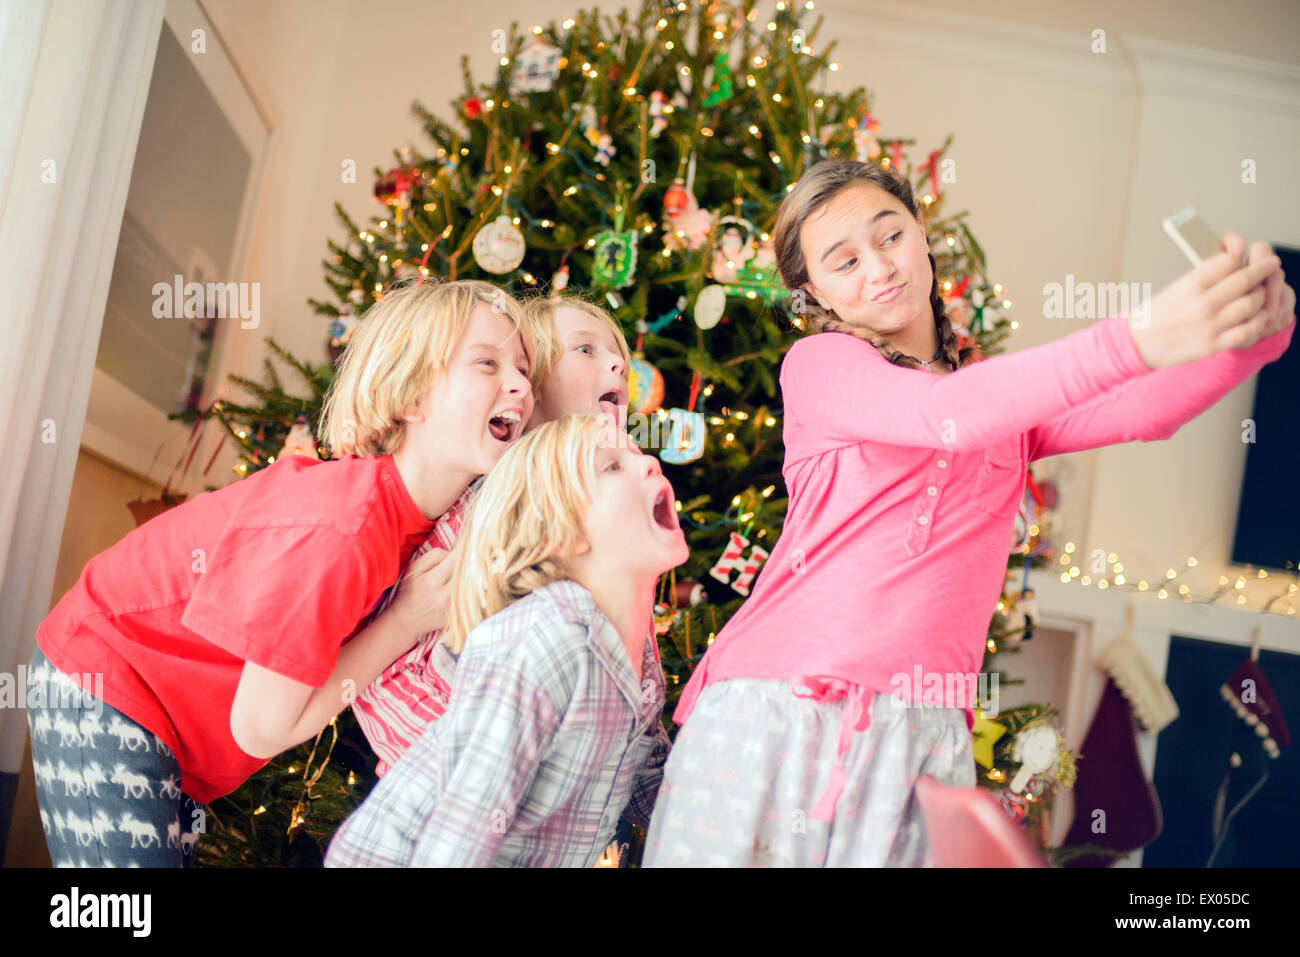 Adolescente et frères en tenant selfies smartphone à Noël Photo Stock